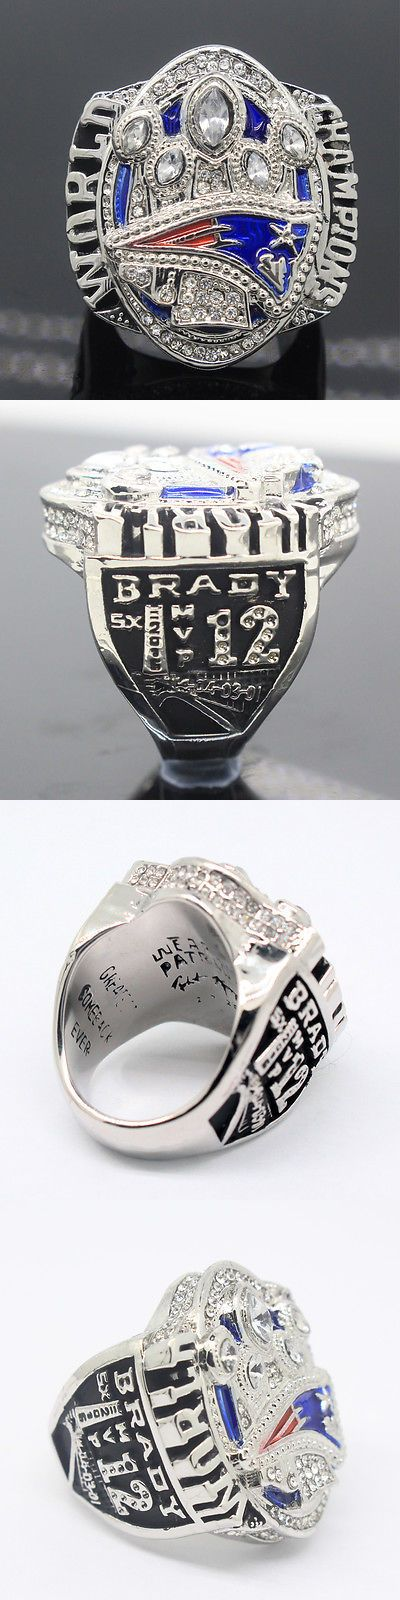 Other Fan Apparel and Souvenirs 465: Lot Of Five (5) 2017 New England Patriots Superbowl Rings Buy American Not China -> BUY IT NOW ONLY: $149.99 on eBay!